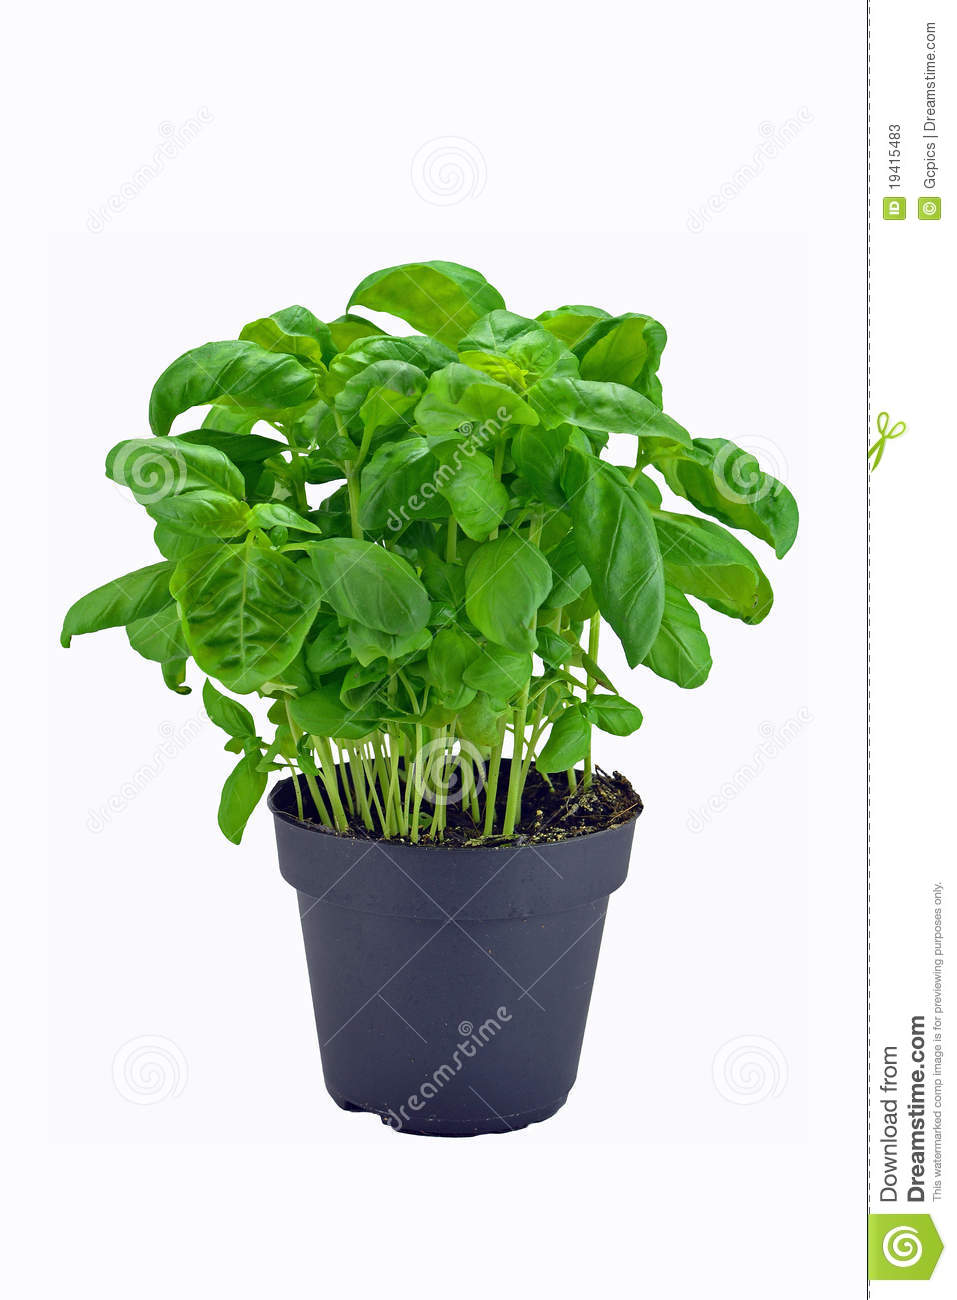 Basil plant in pot stock image image of herbs botany 19415483 - Seven tricks for healthier potted plants ...